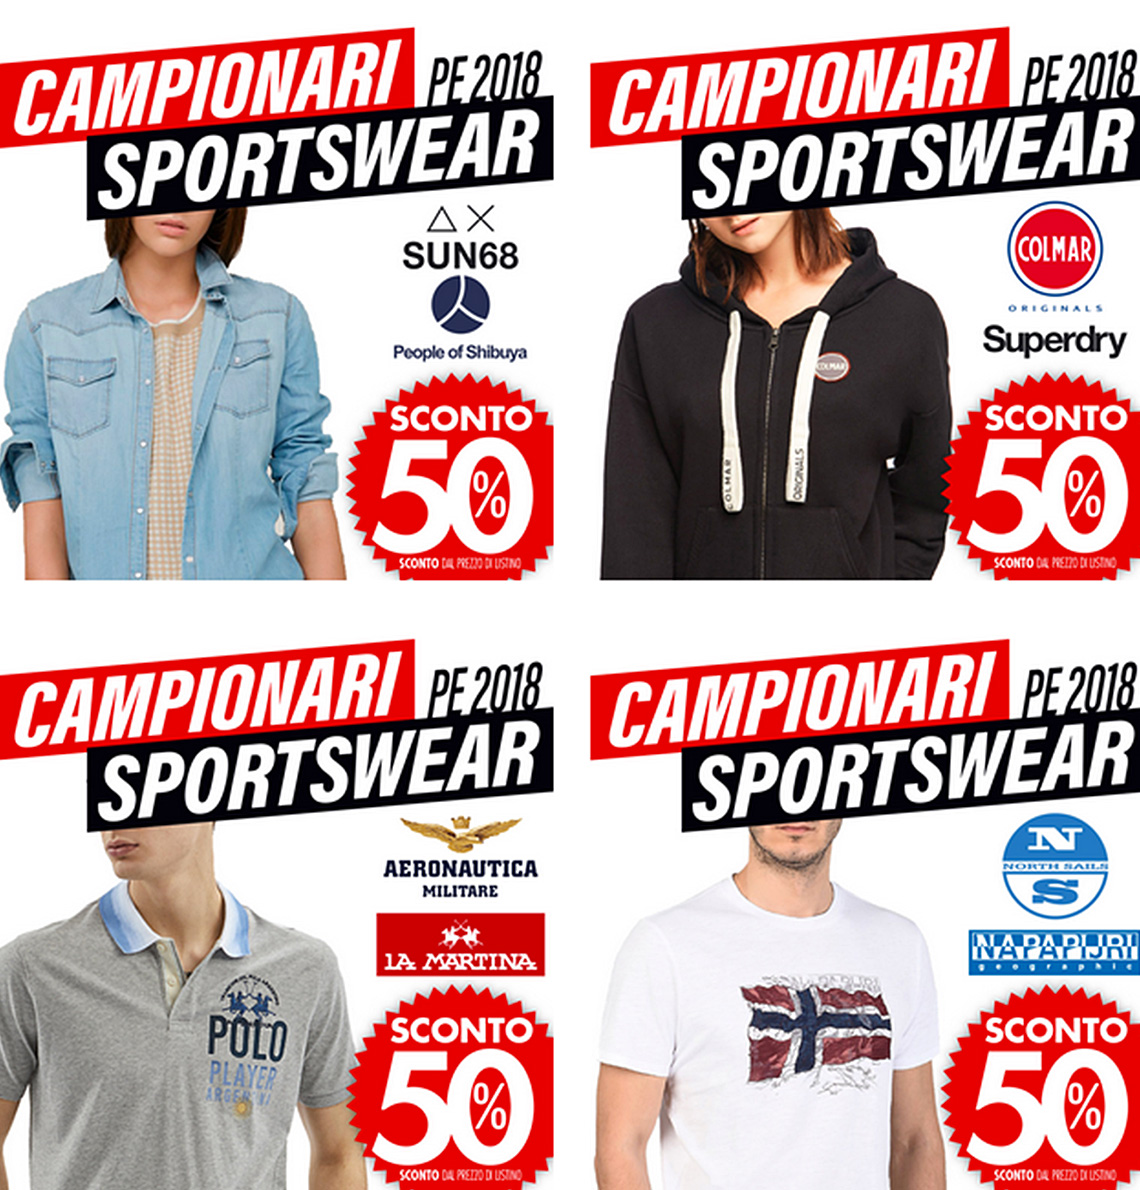 All'outlet di Vernante scopri i nuovi campionari sportswear primavera estate 2018